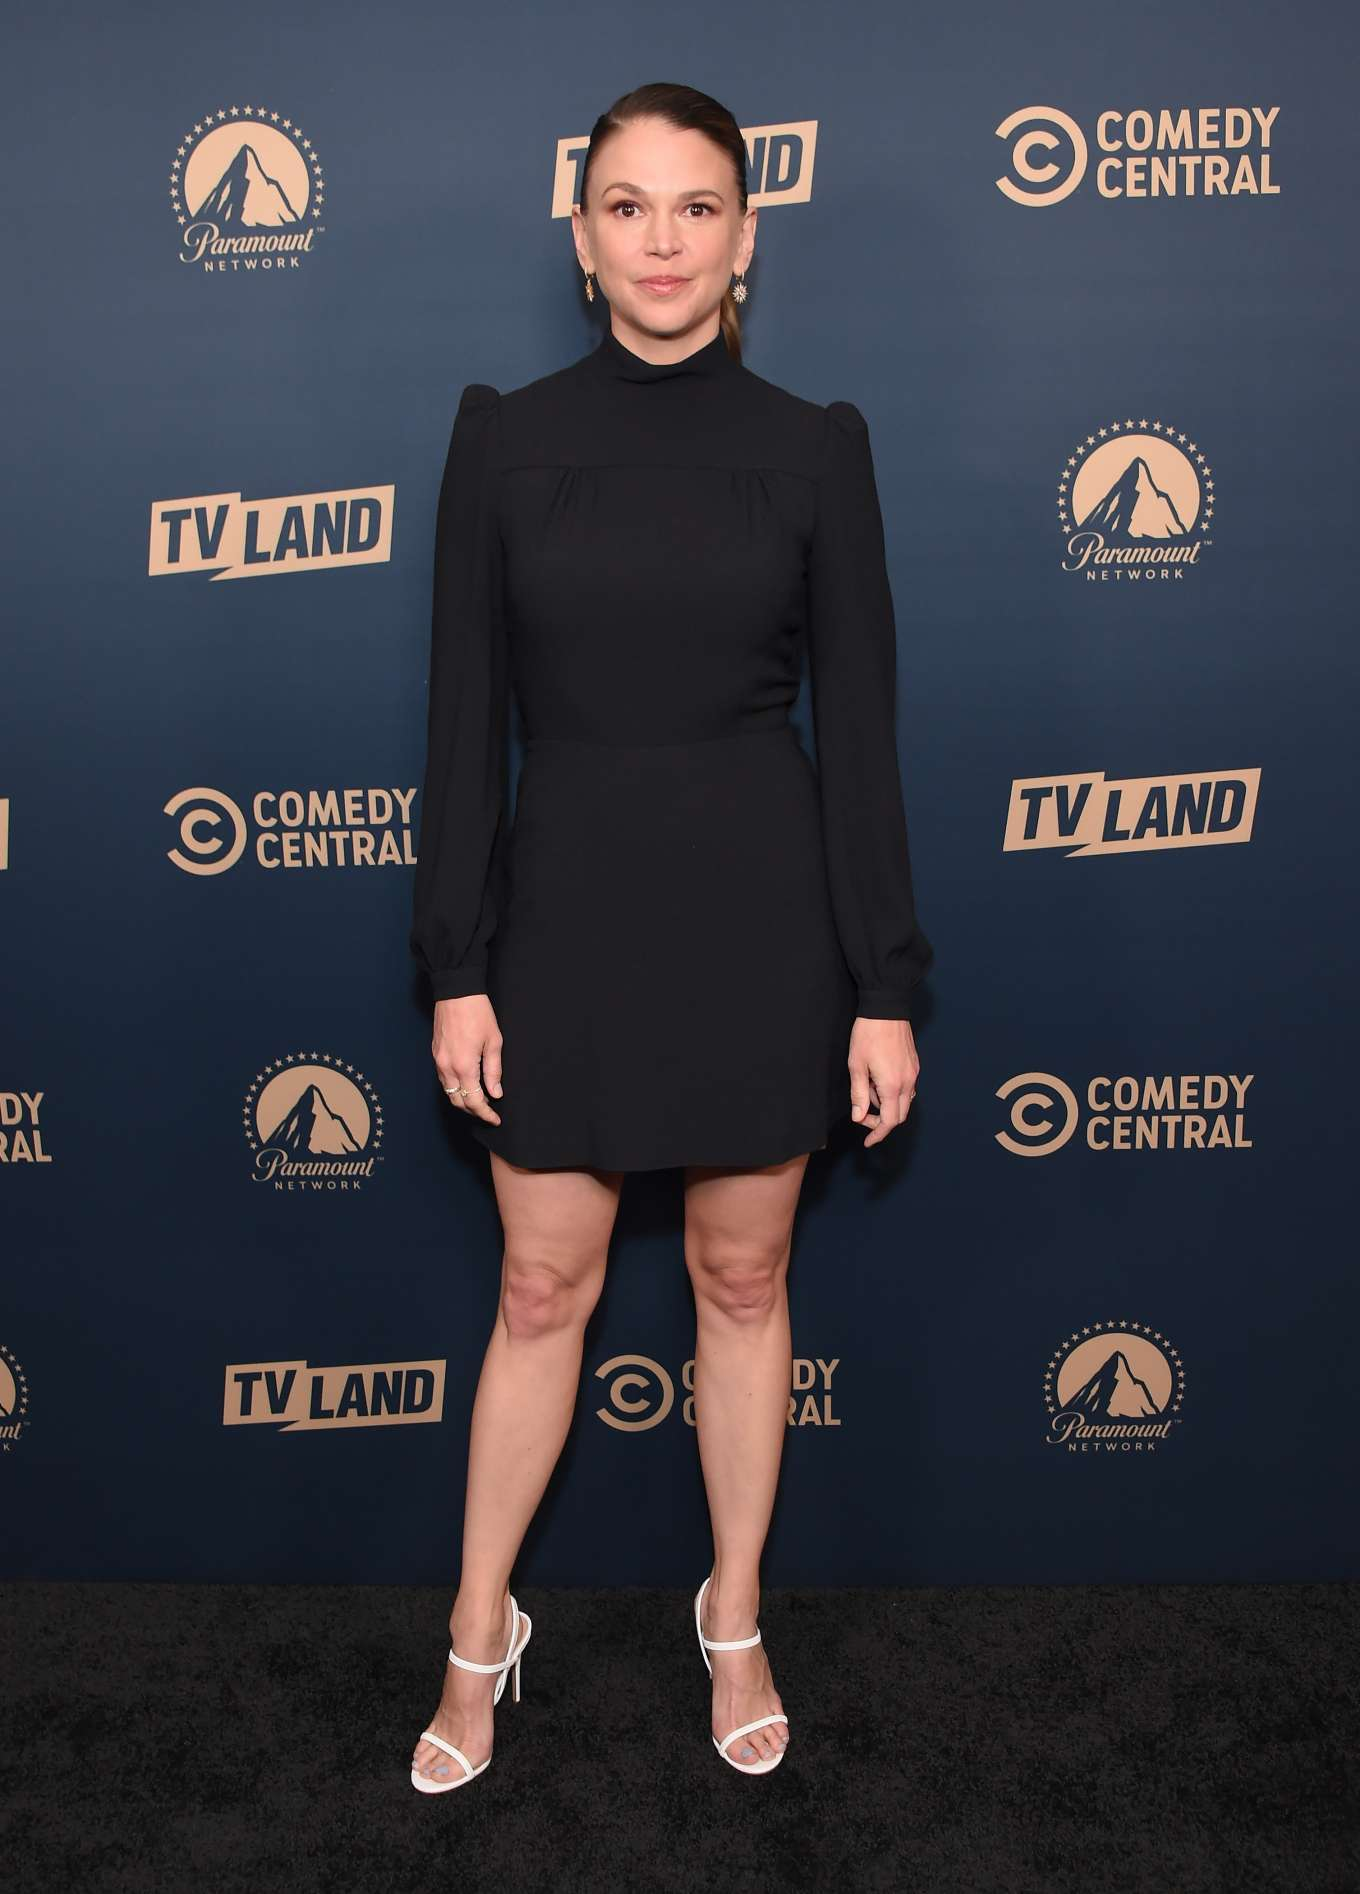 Sutton Foster - Comedy Central, Paramount Network and TV Land Press Day in LA